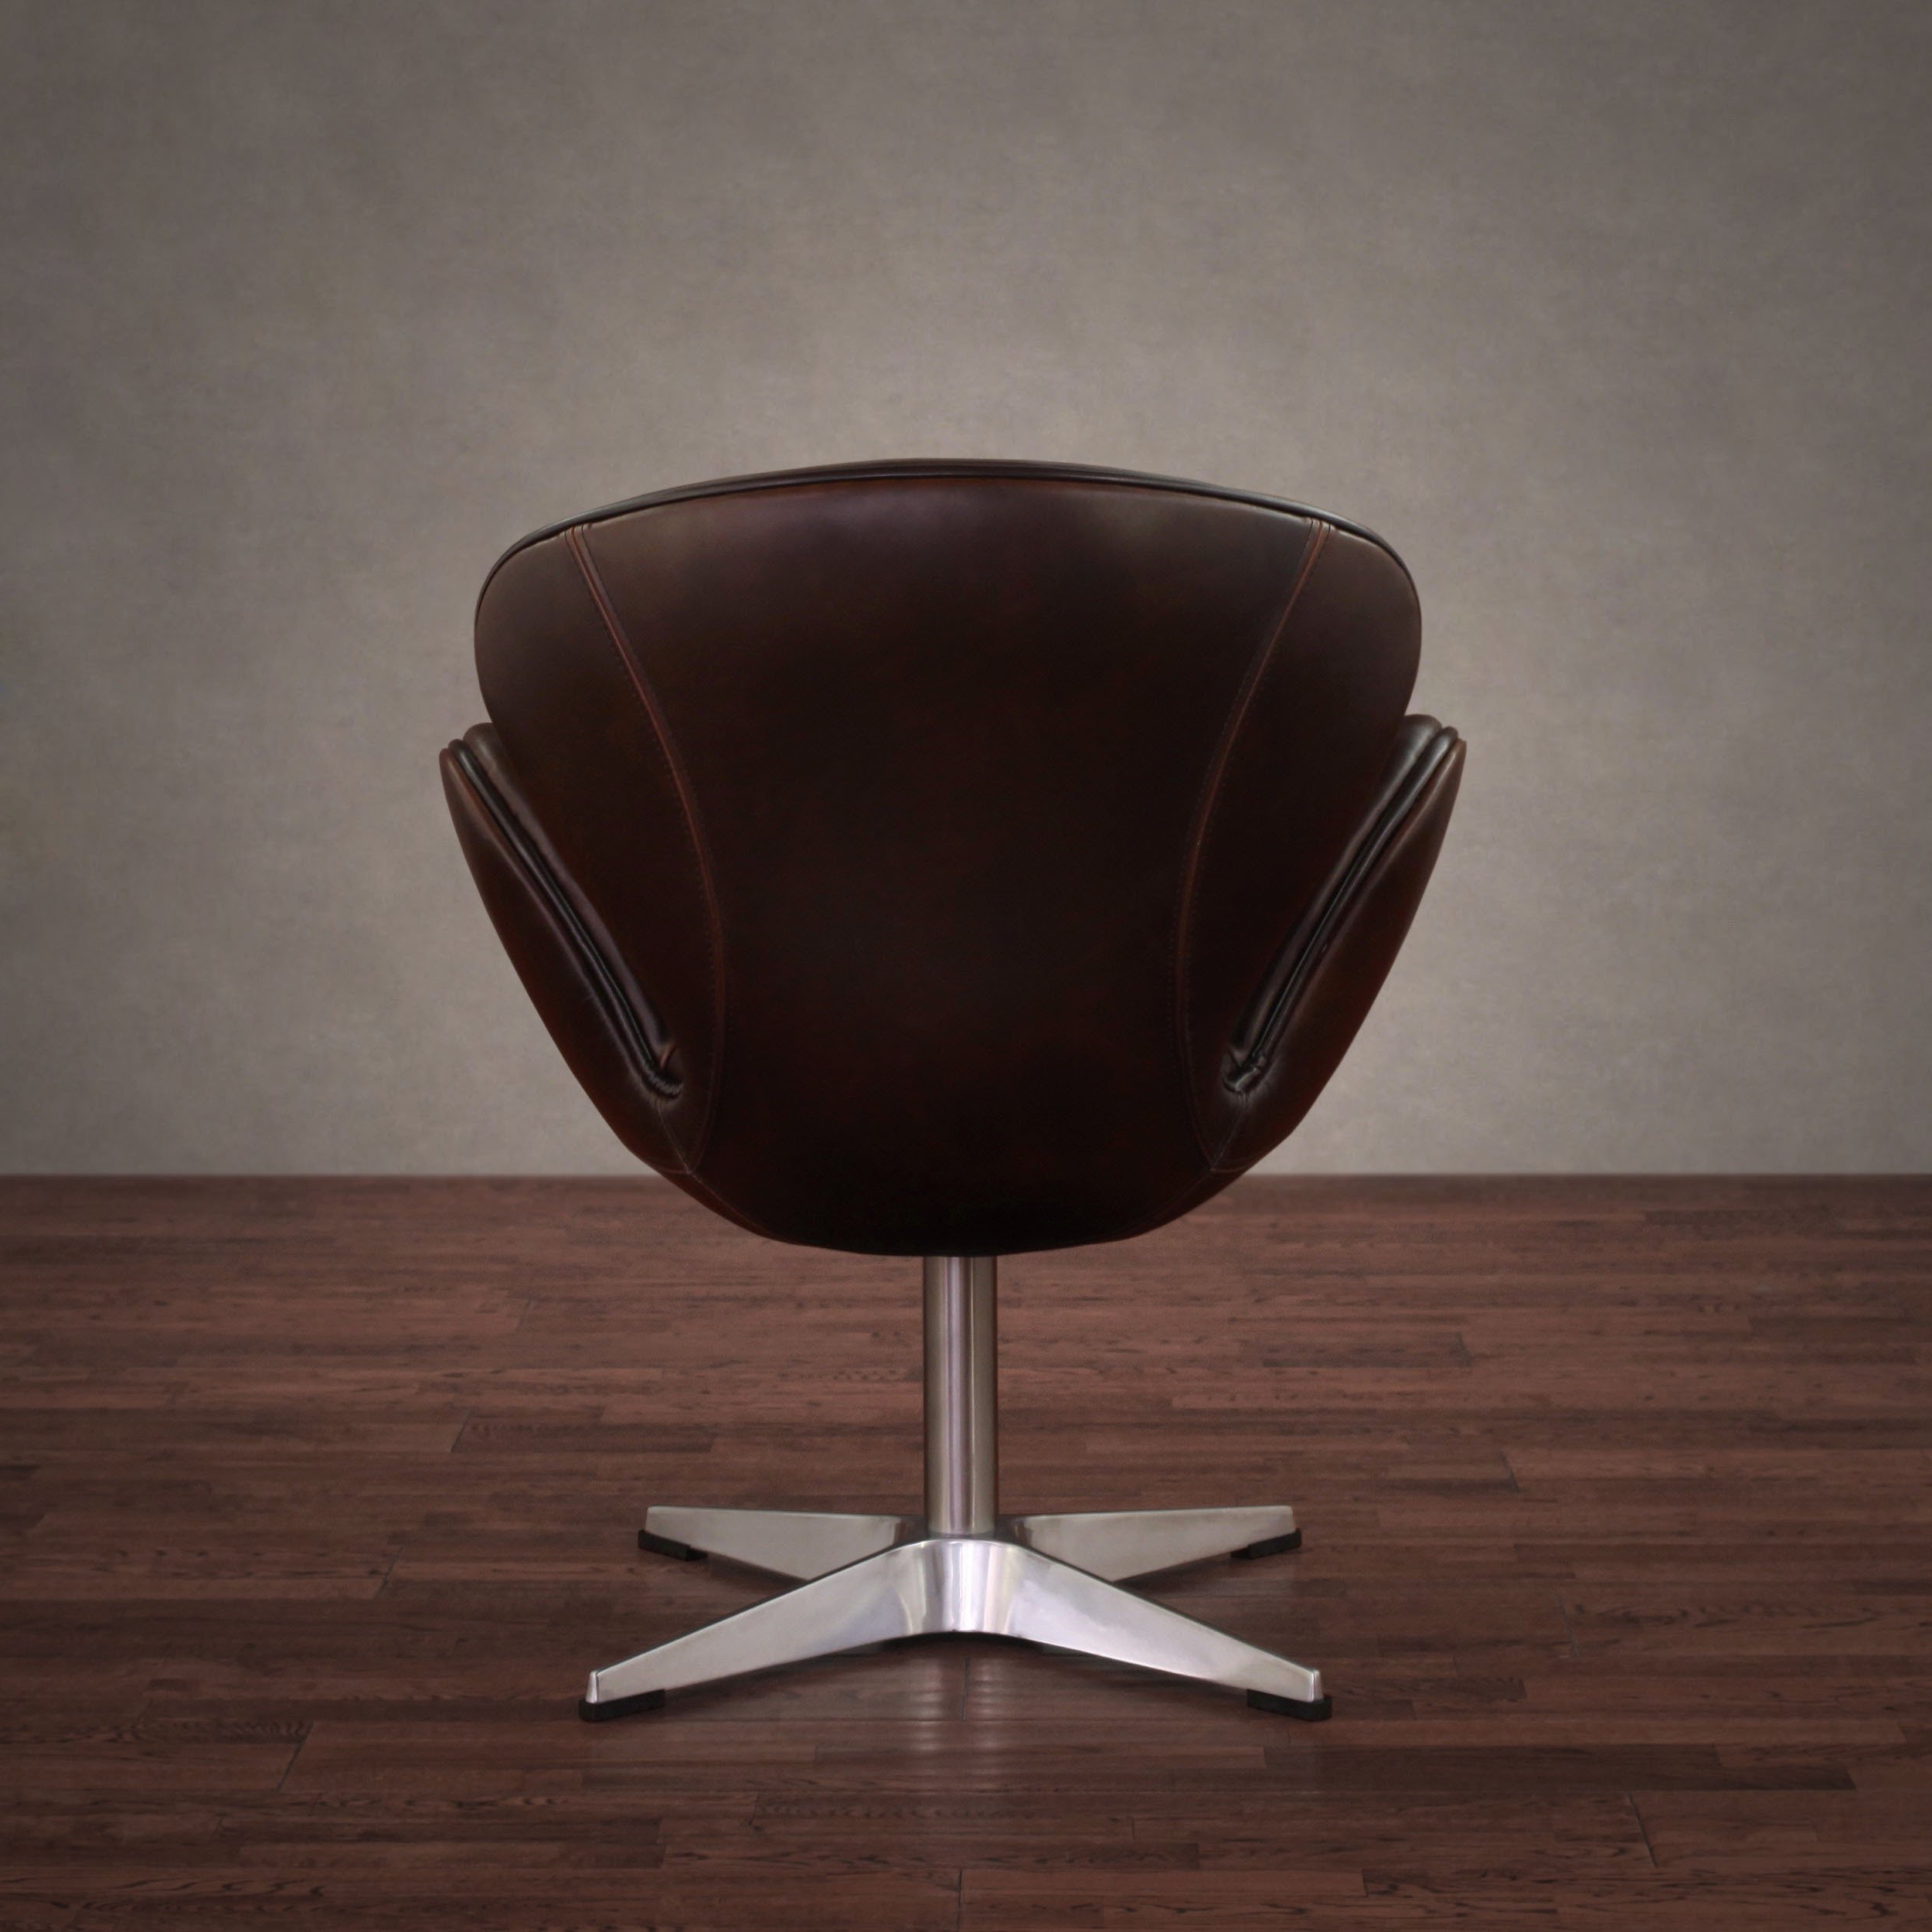 Famous Shop Amelia Vintage Tobacco Leather Swivel Chair – Free Shipping Intended For Swivel Tobacco Leather Chairs (View 4 of 20)